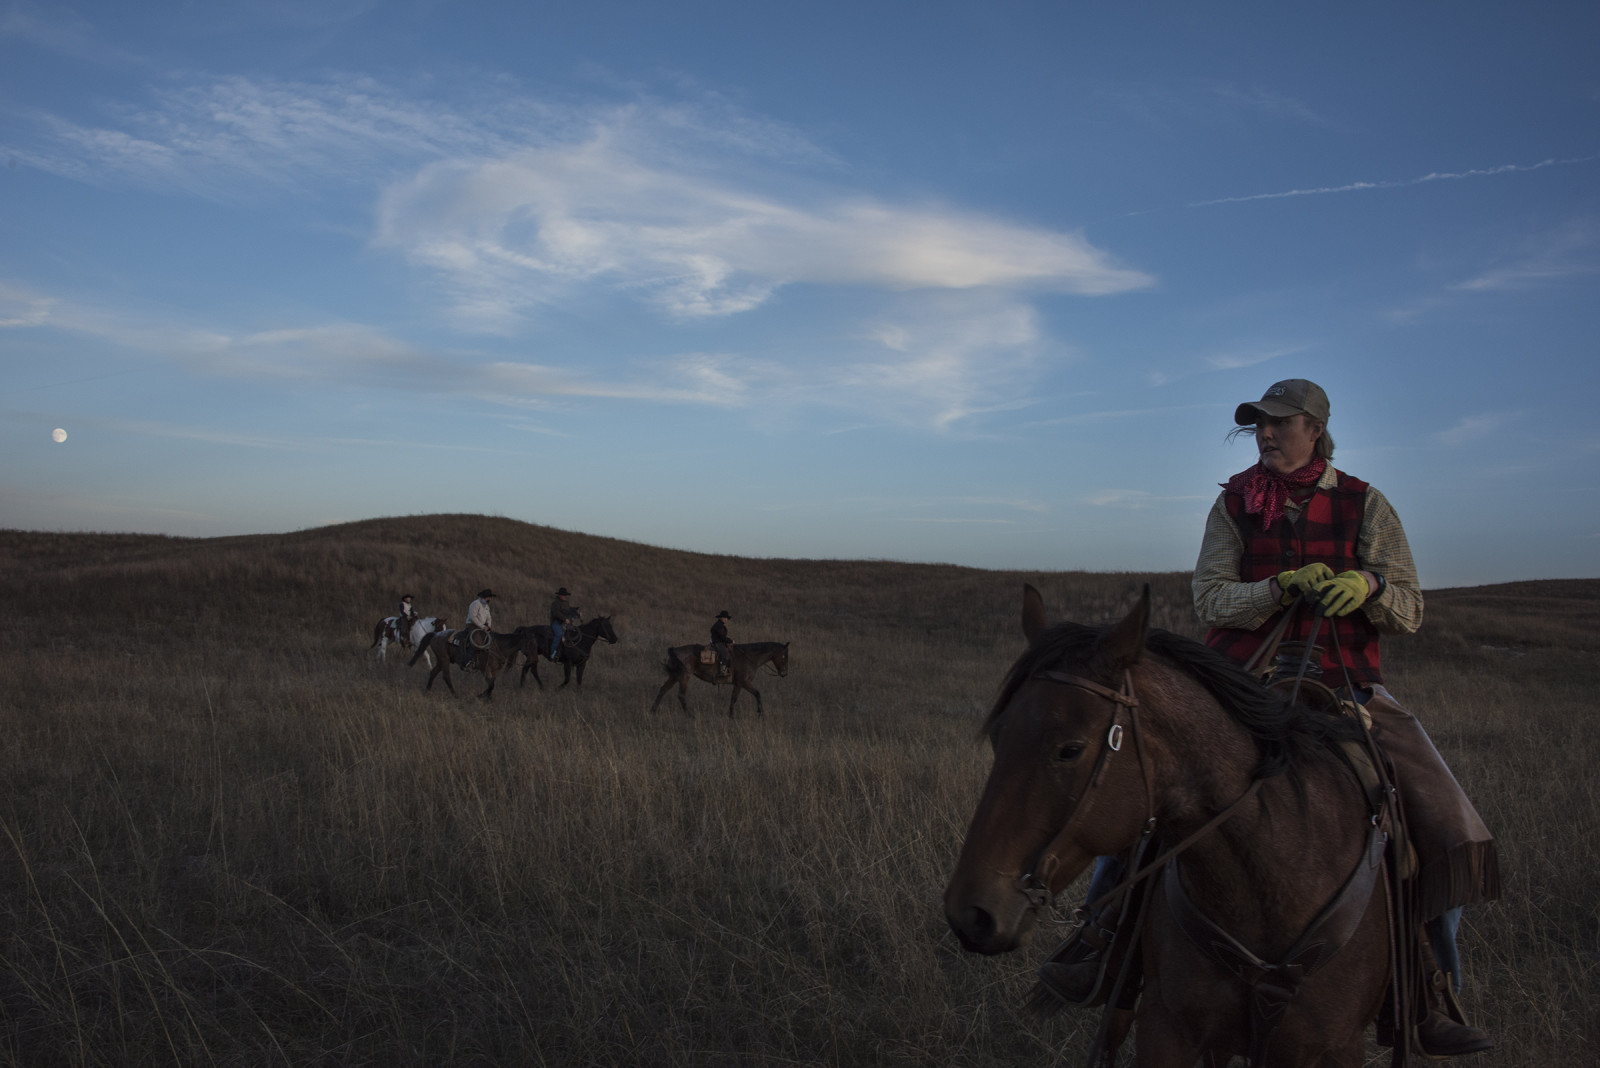 Sarah Sortum and her family on a cattle drive in October, 2015. (Mariah Lundgren)